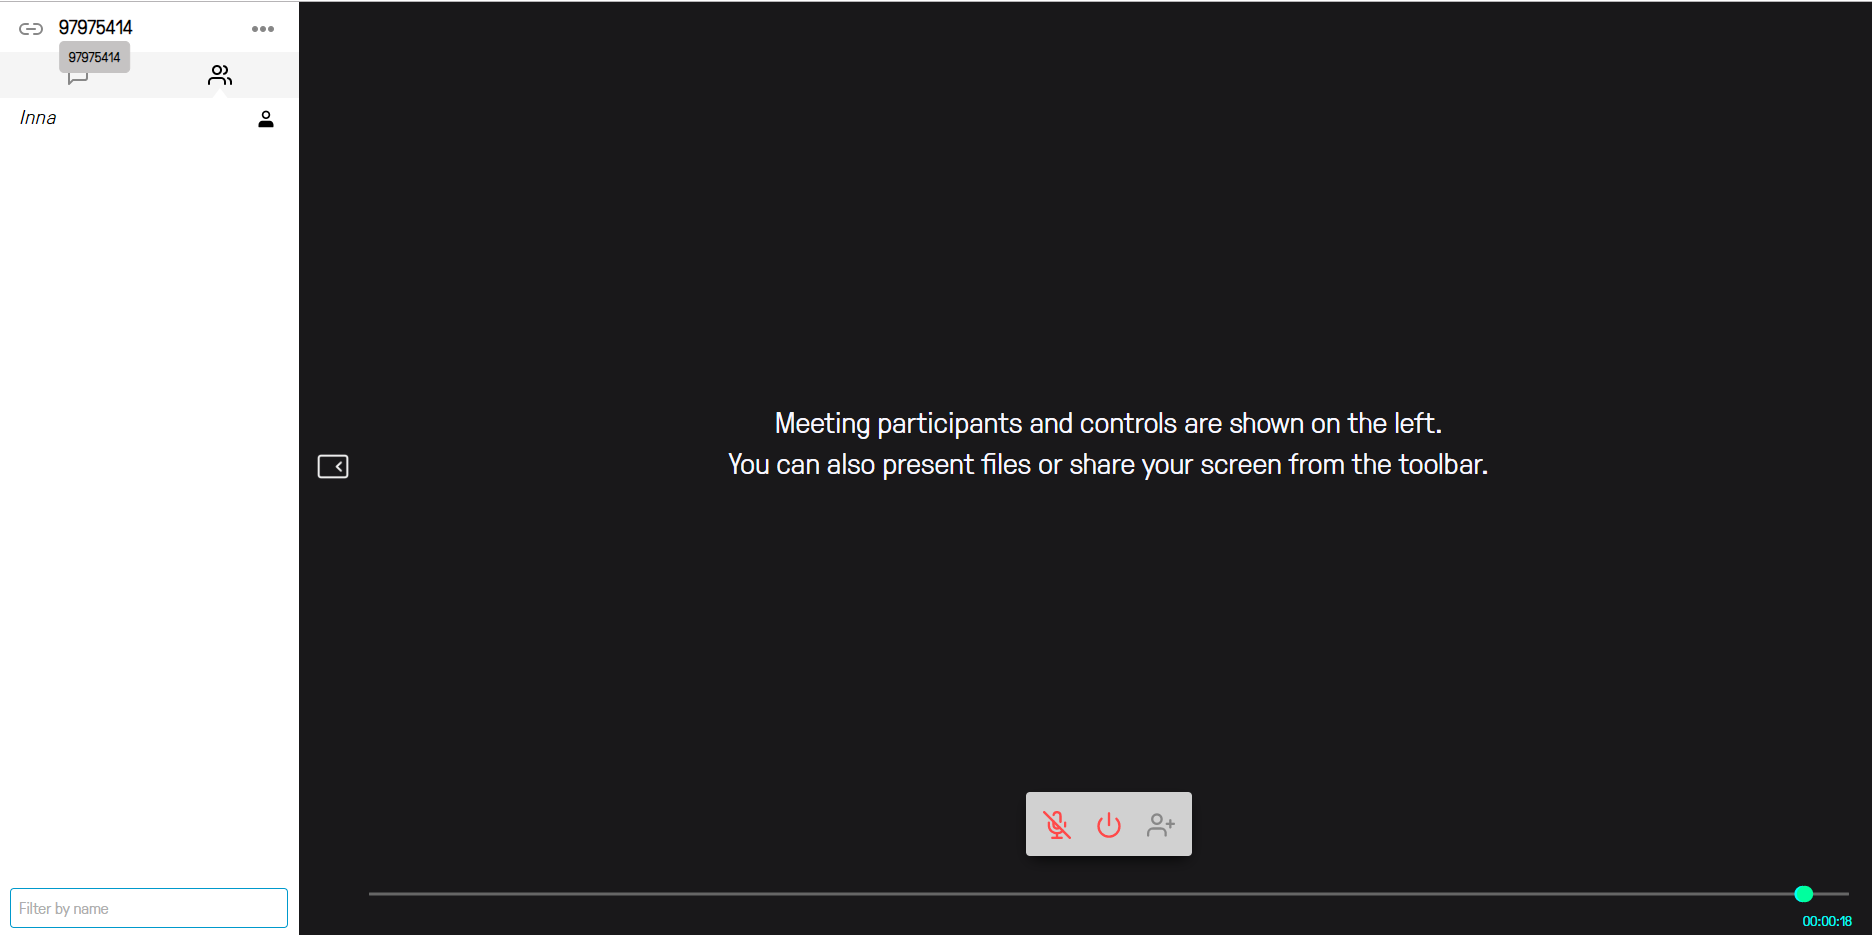 The picture shows a virtual meeting window